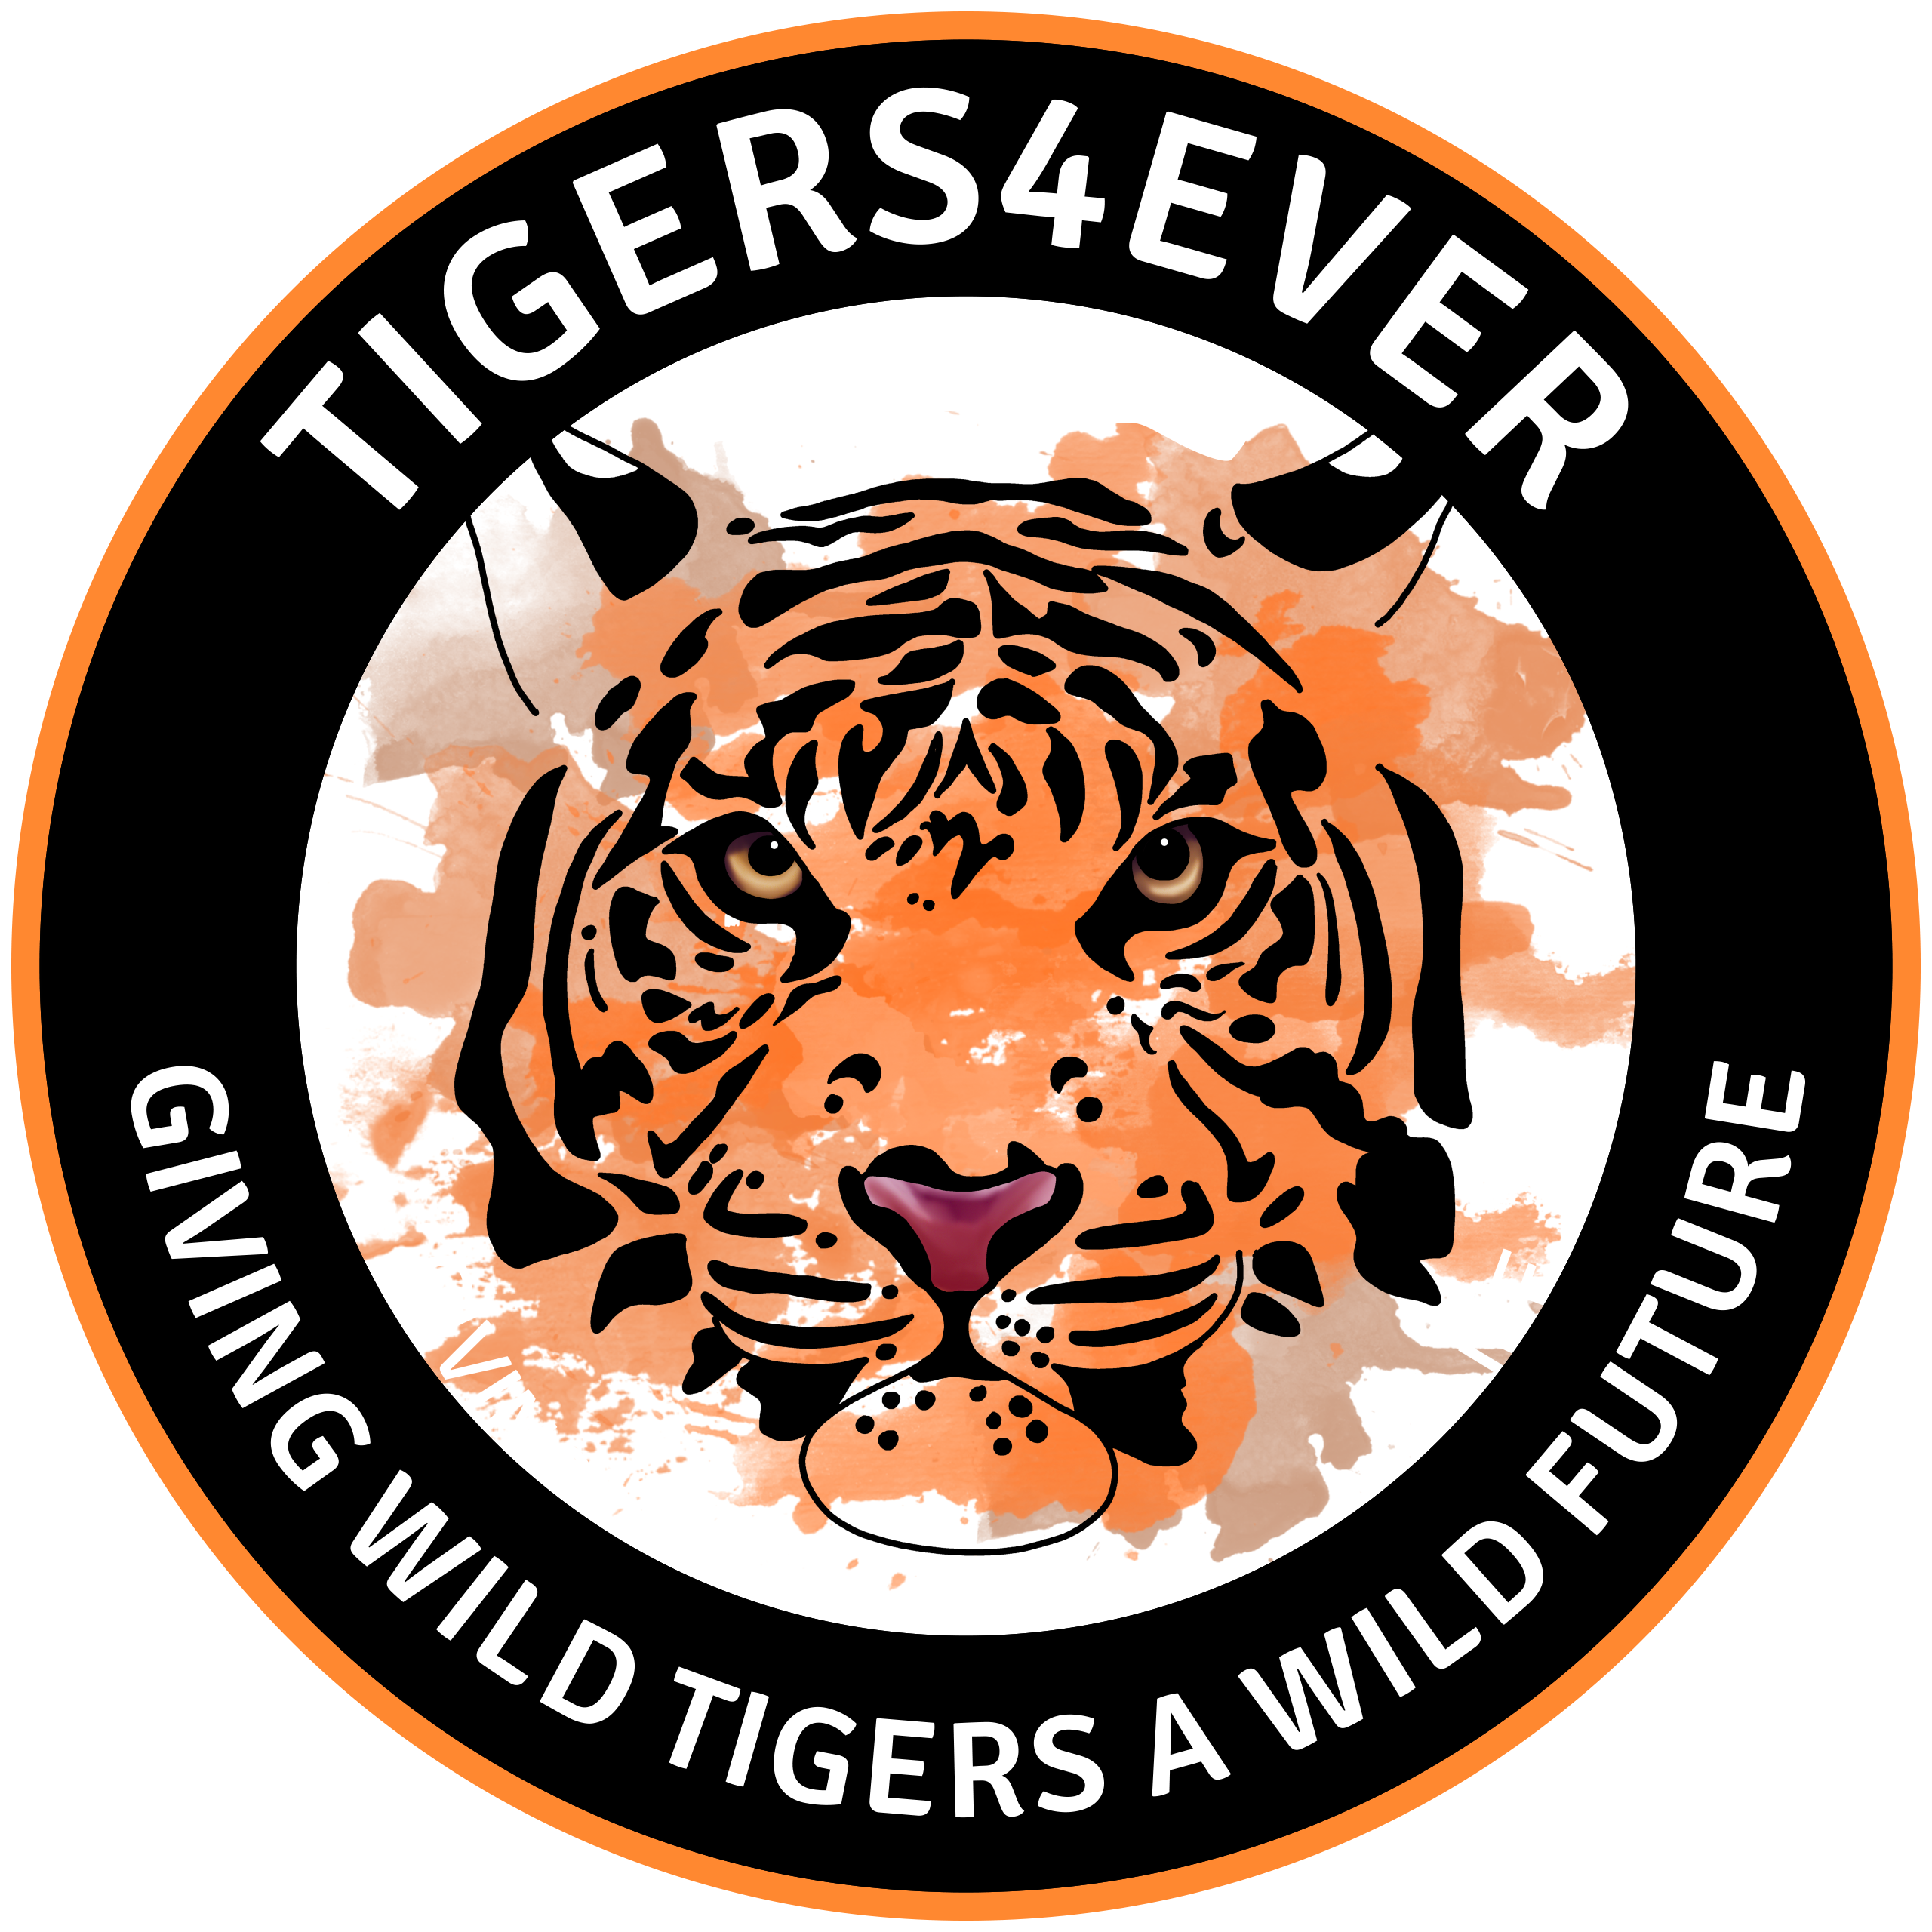 Tigers4Ever Giving wild tigers a wild future